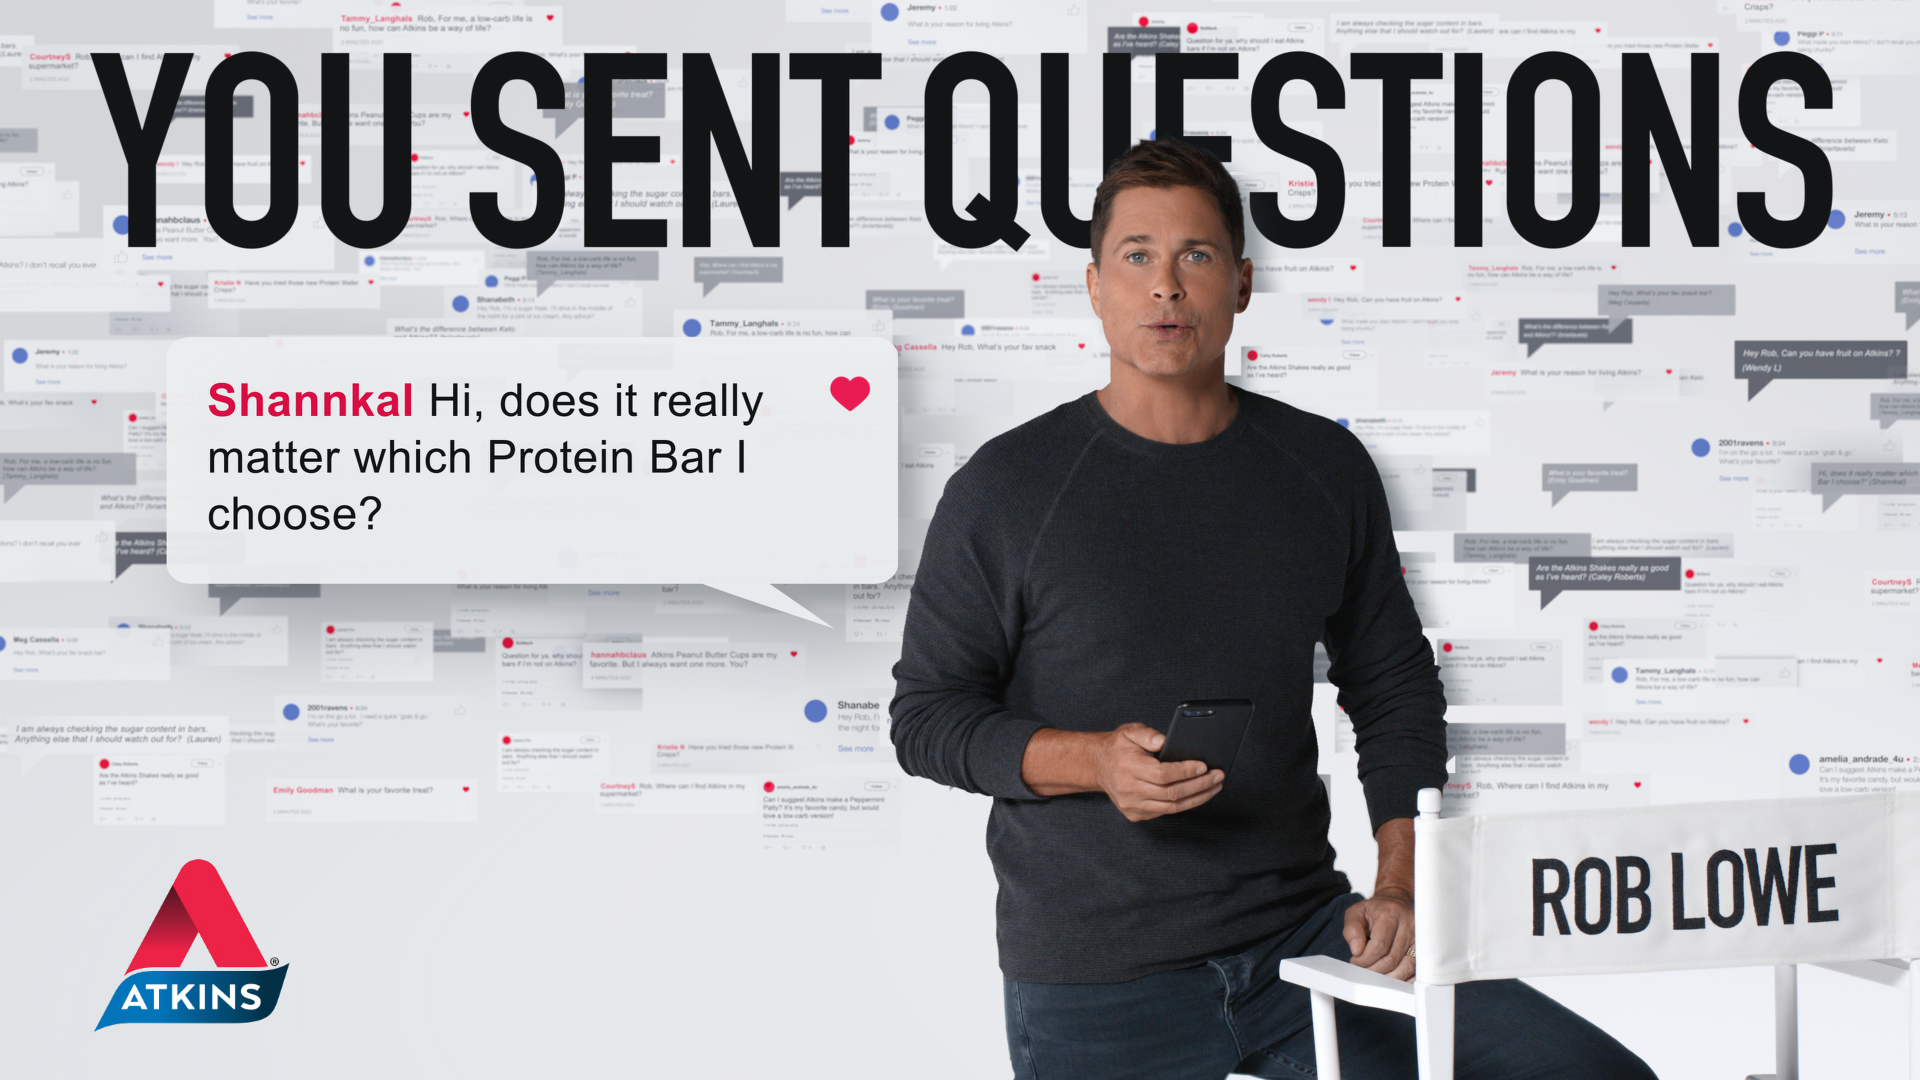 Shannkal asks: Hi, does it really matter which Protein Bar I choose?